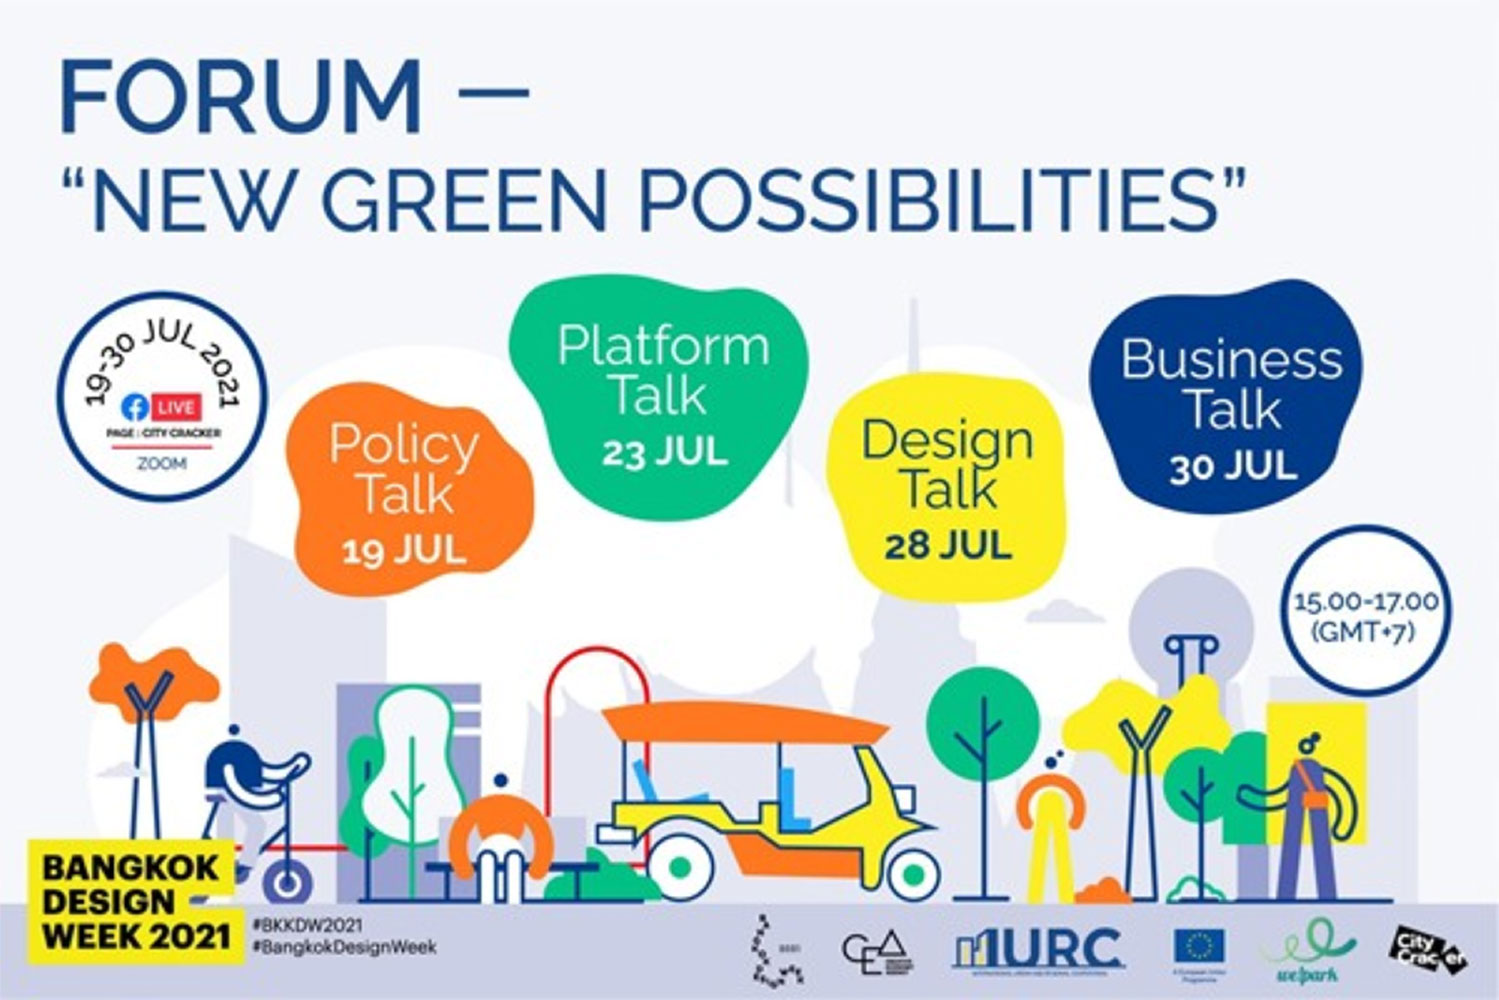 """Frasers Property Holdings (Thailand) invites you to join  """"New Green Possibilities"""" international online forum  on the topic """"Green Business Pathway""""  on 30 July 2021, 3:00 - 5:30 PM."""